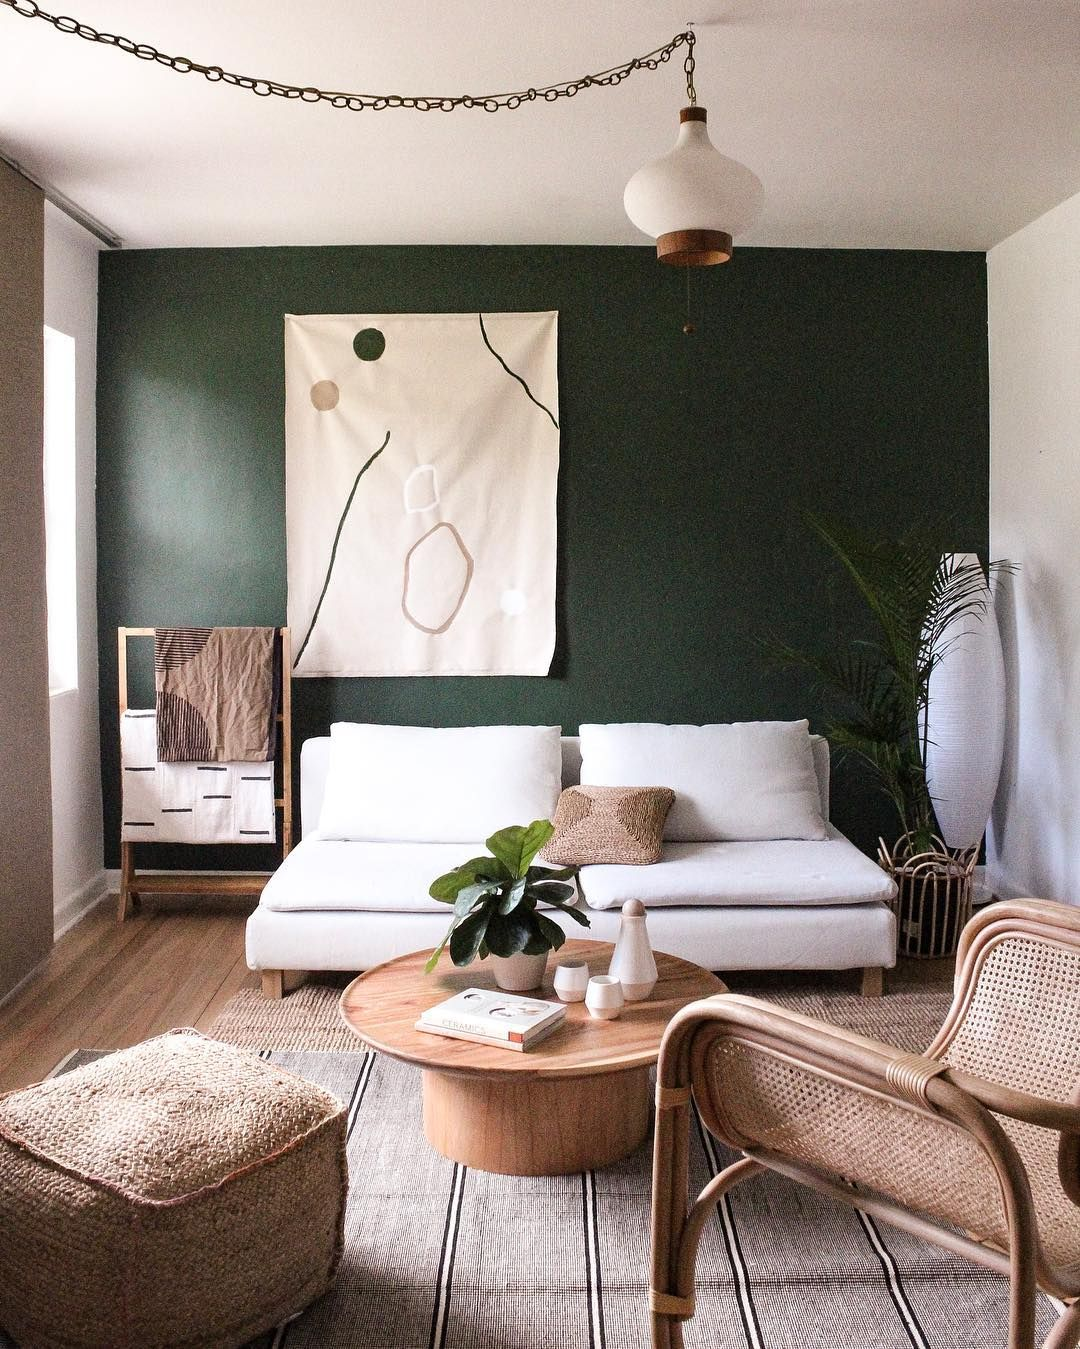 26 Relaxing Green Living Room Ideas: The House On Emily Lane (@emilylaneliving) On Instagram